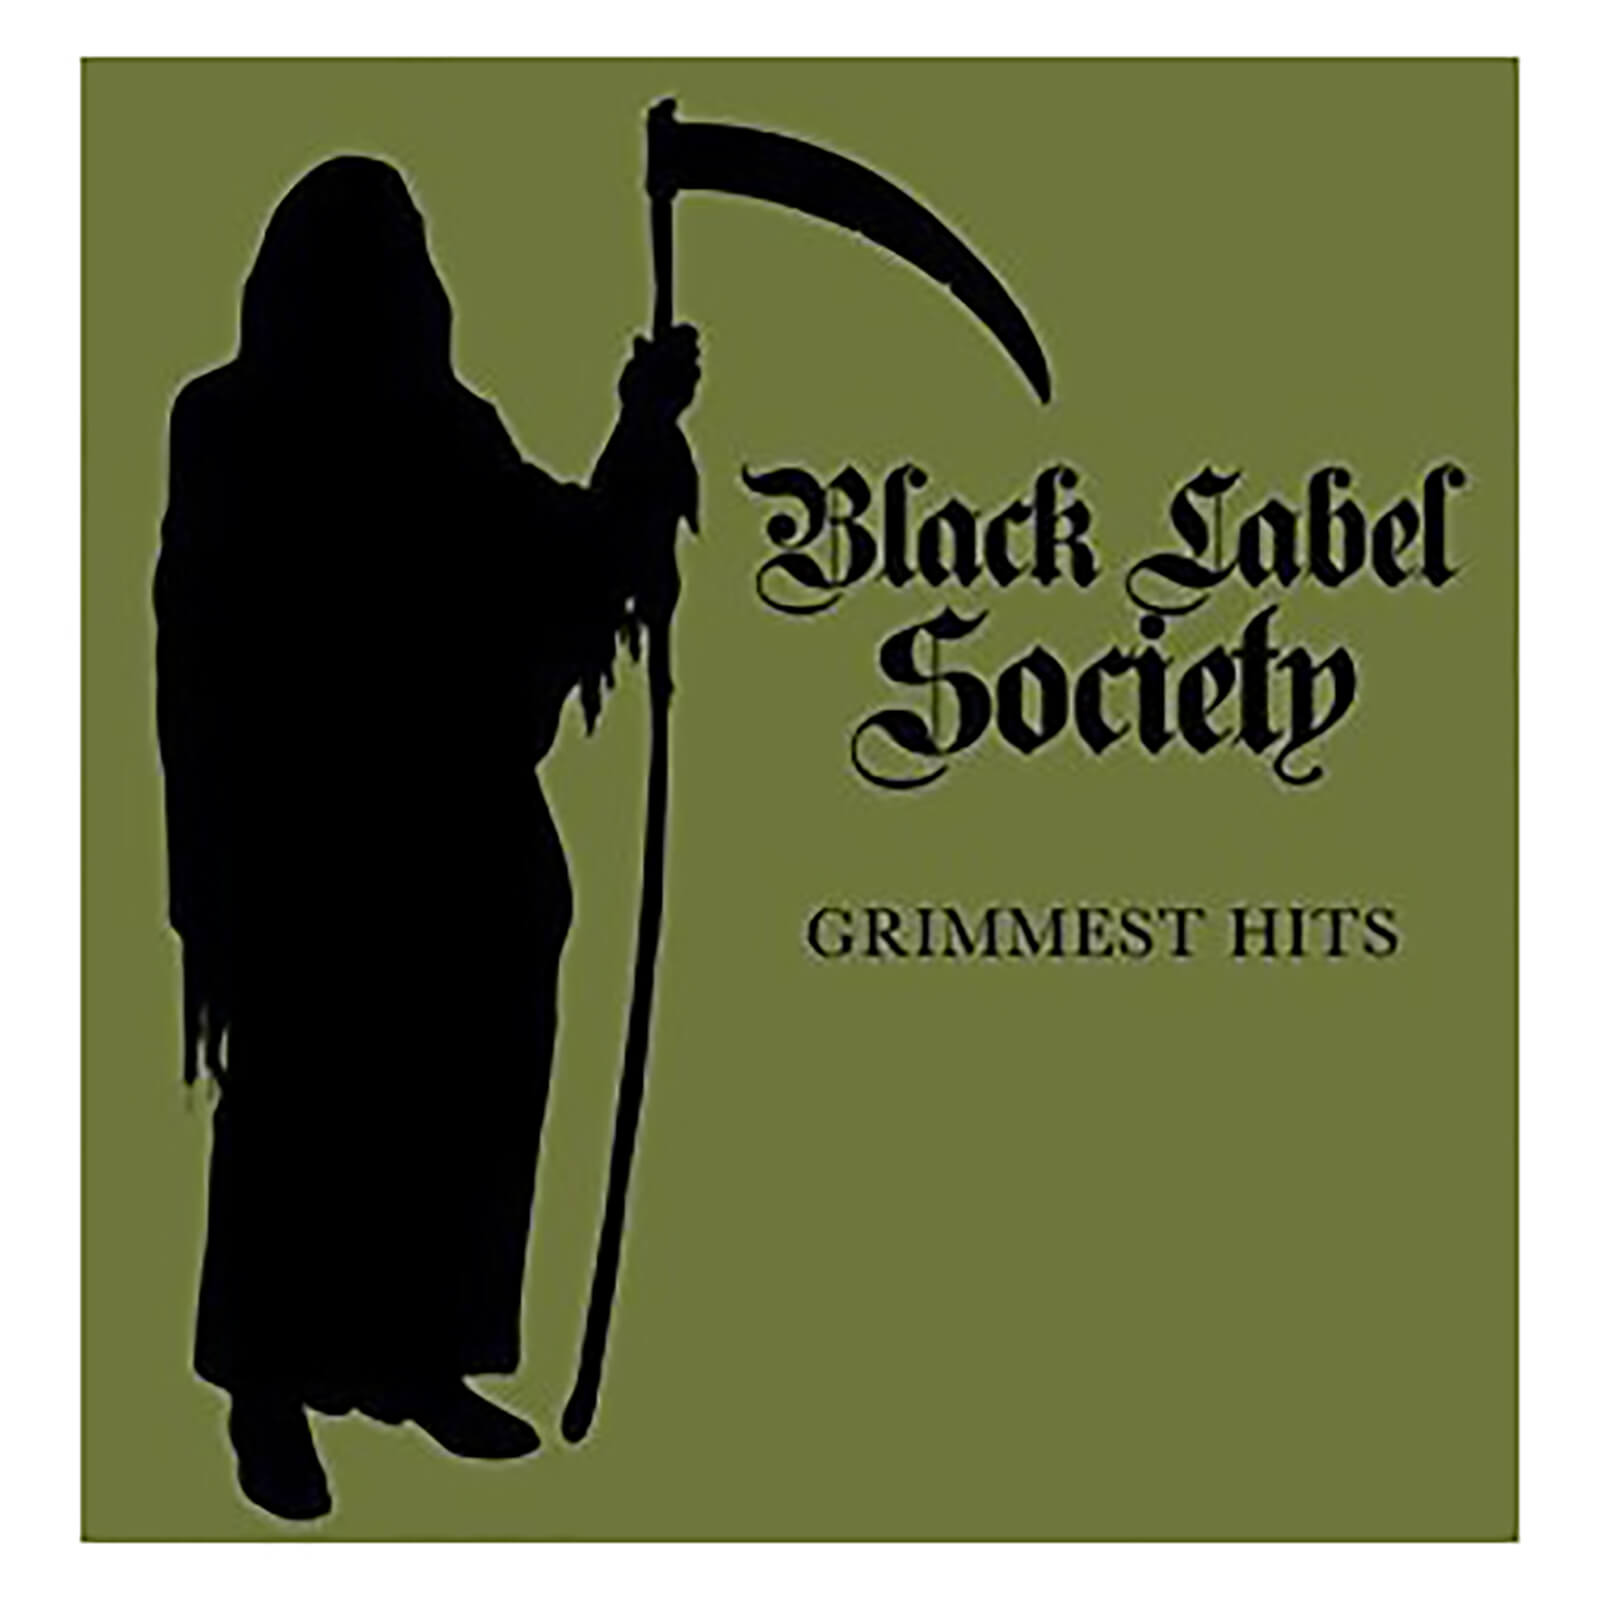 Black Label Society - Grimmest Hits - Vinyl